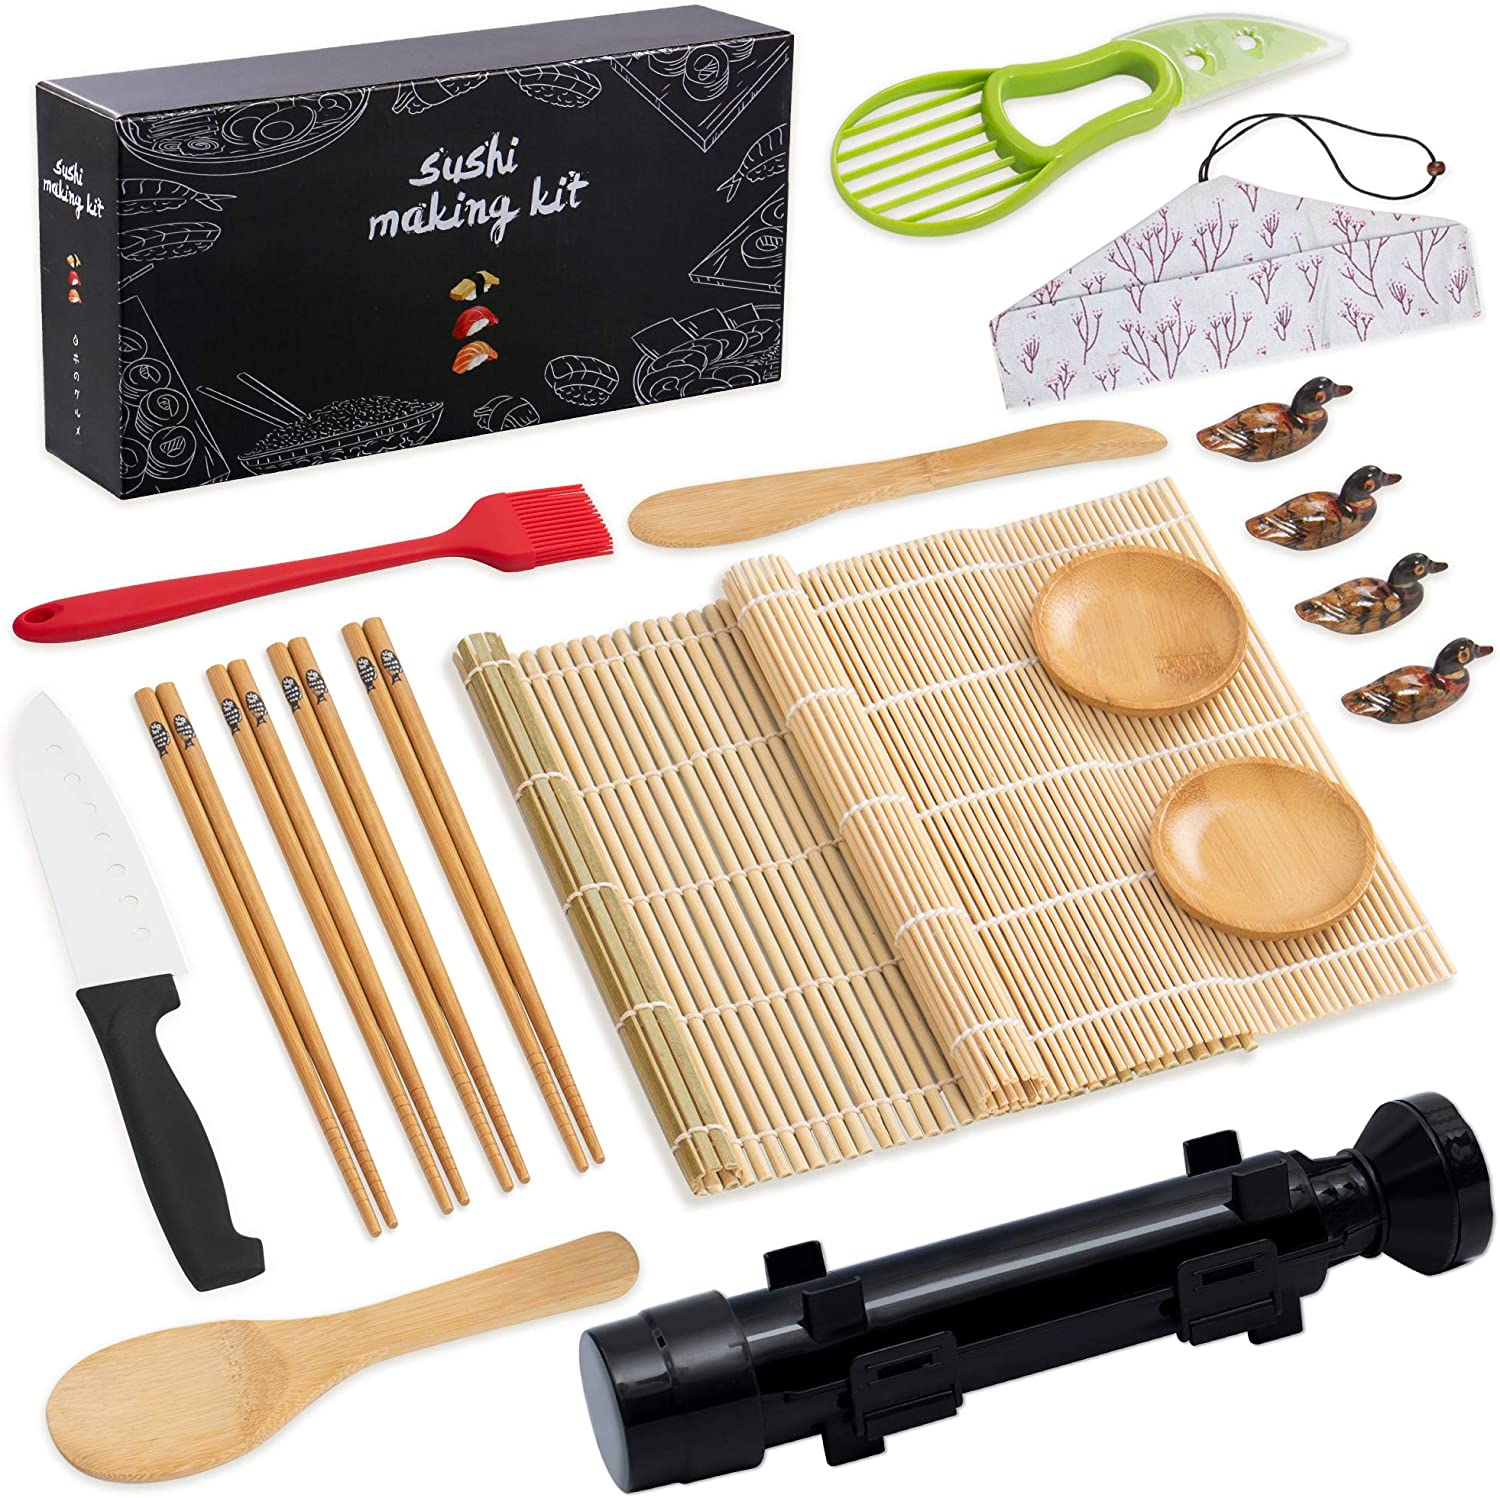 pentaQ Sushi Making Kit, 20 Pieces Sushi Bazooka Maker Set for beginner, DIY Sushi Roller Machine with Natural Bamboo Rolling Mat, Sushi Knife, Bamboo Chopsticks, Sauce Dish, Bazooka-Black